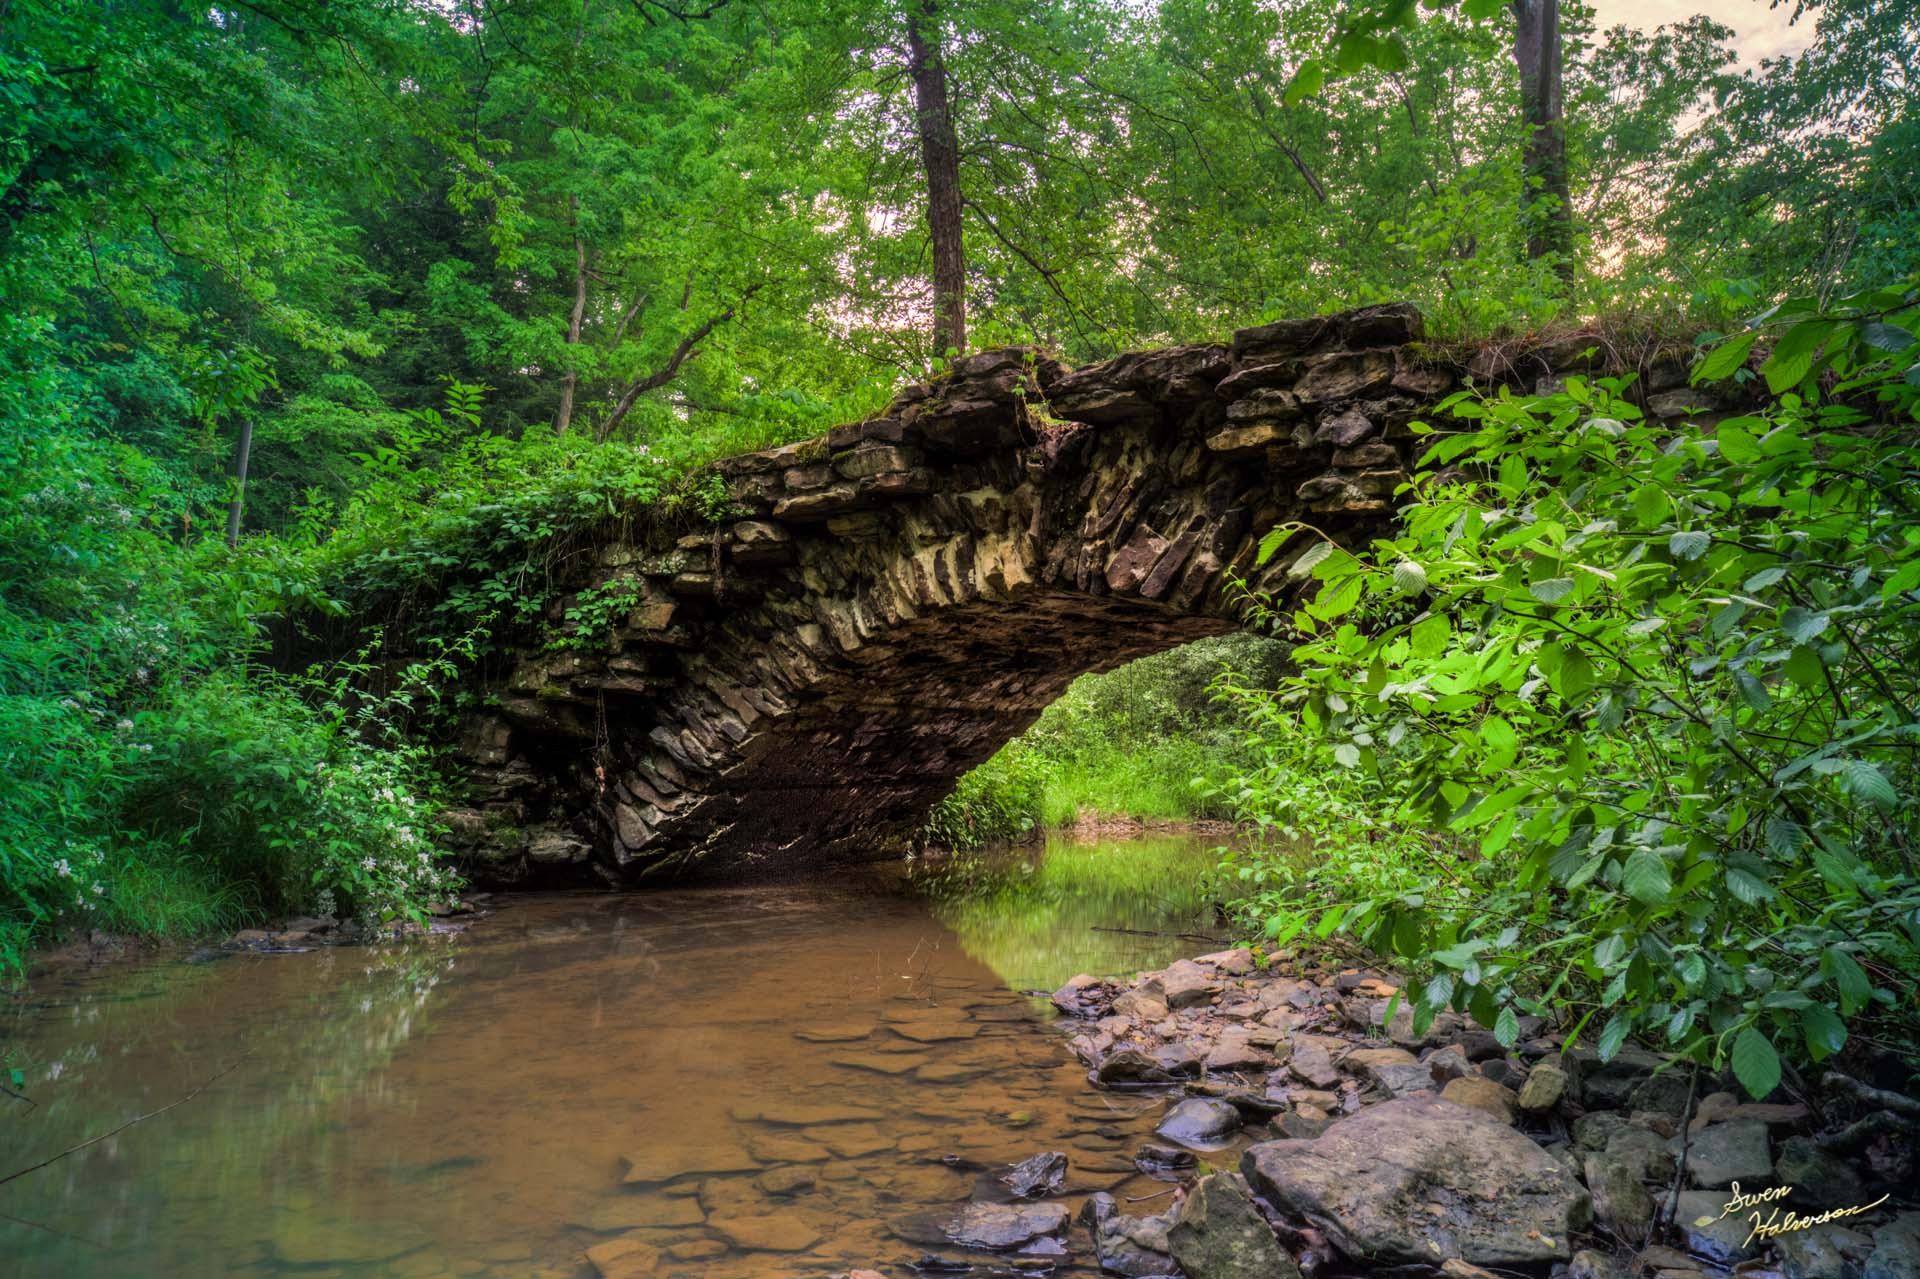 Theme: Bridge | Title: Rock Bridge 1